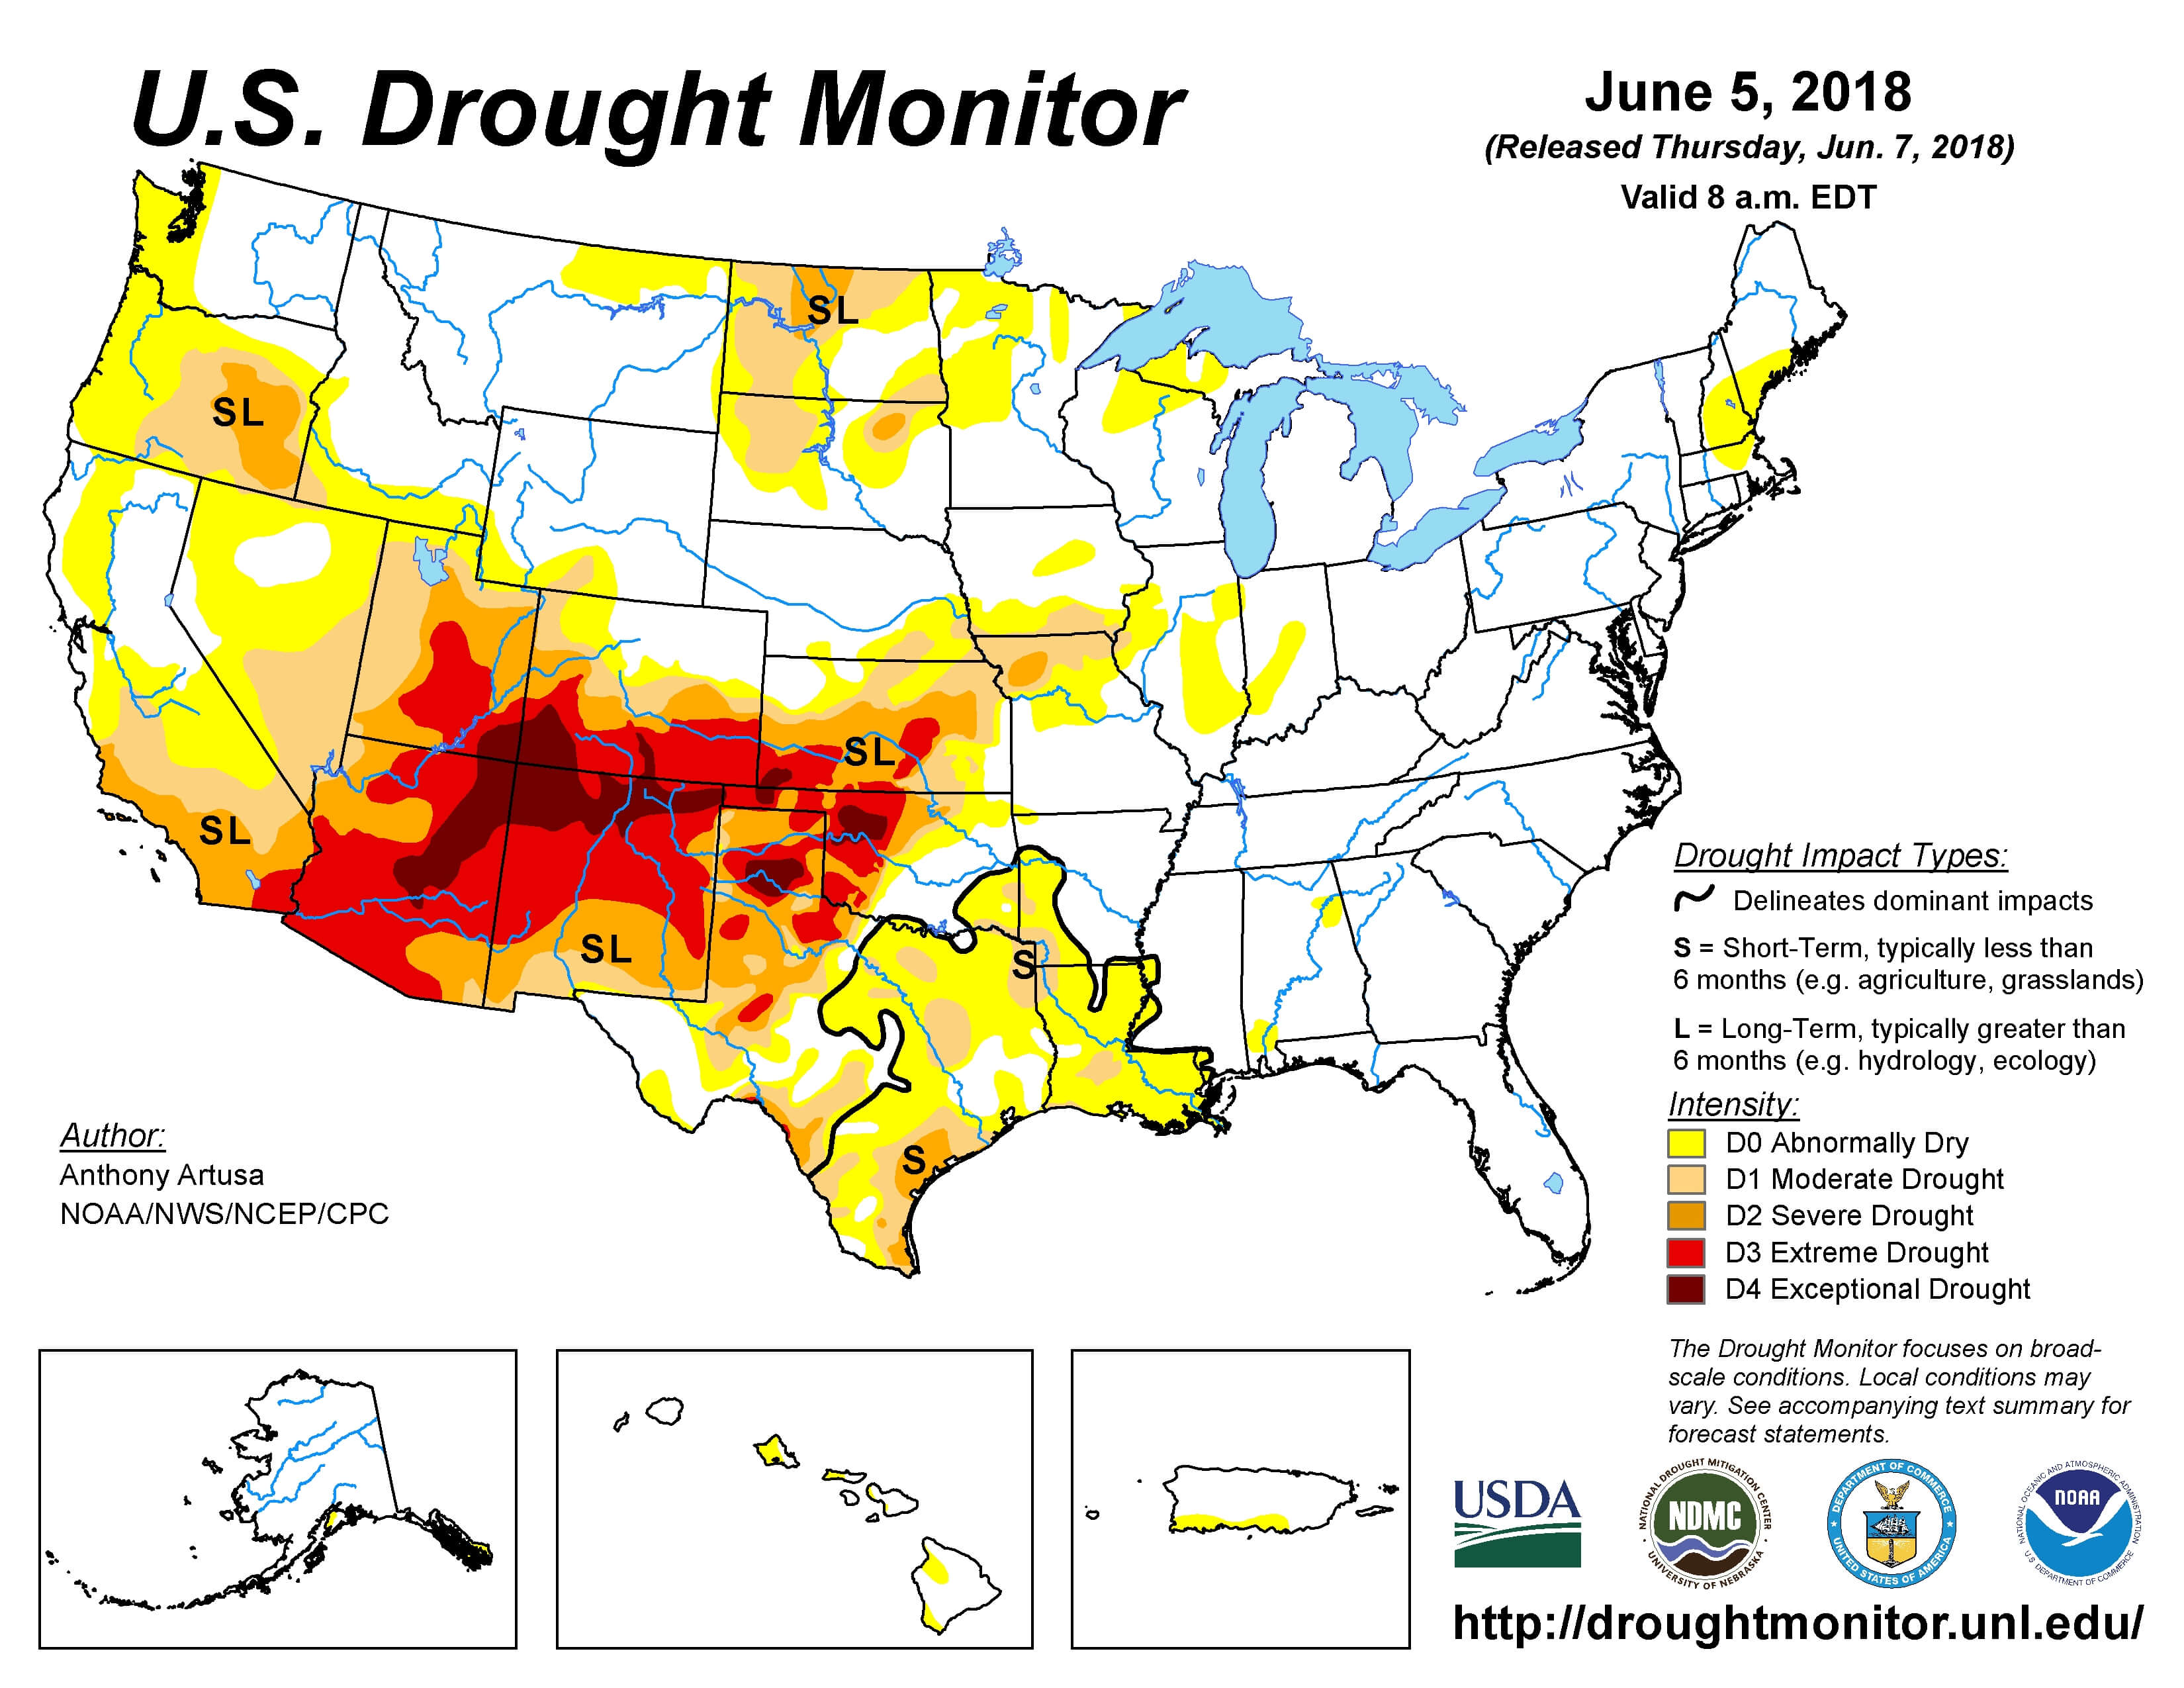 U.S. Drought Monitor map as of June 5, 2018